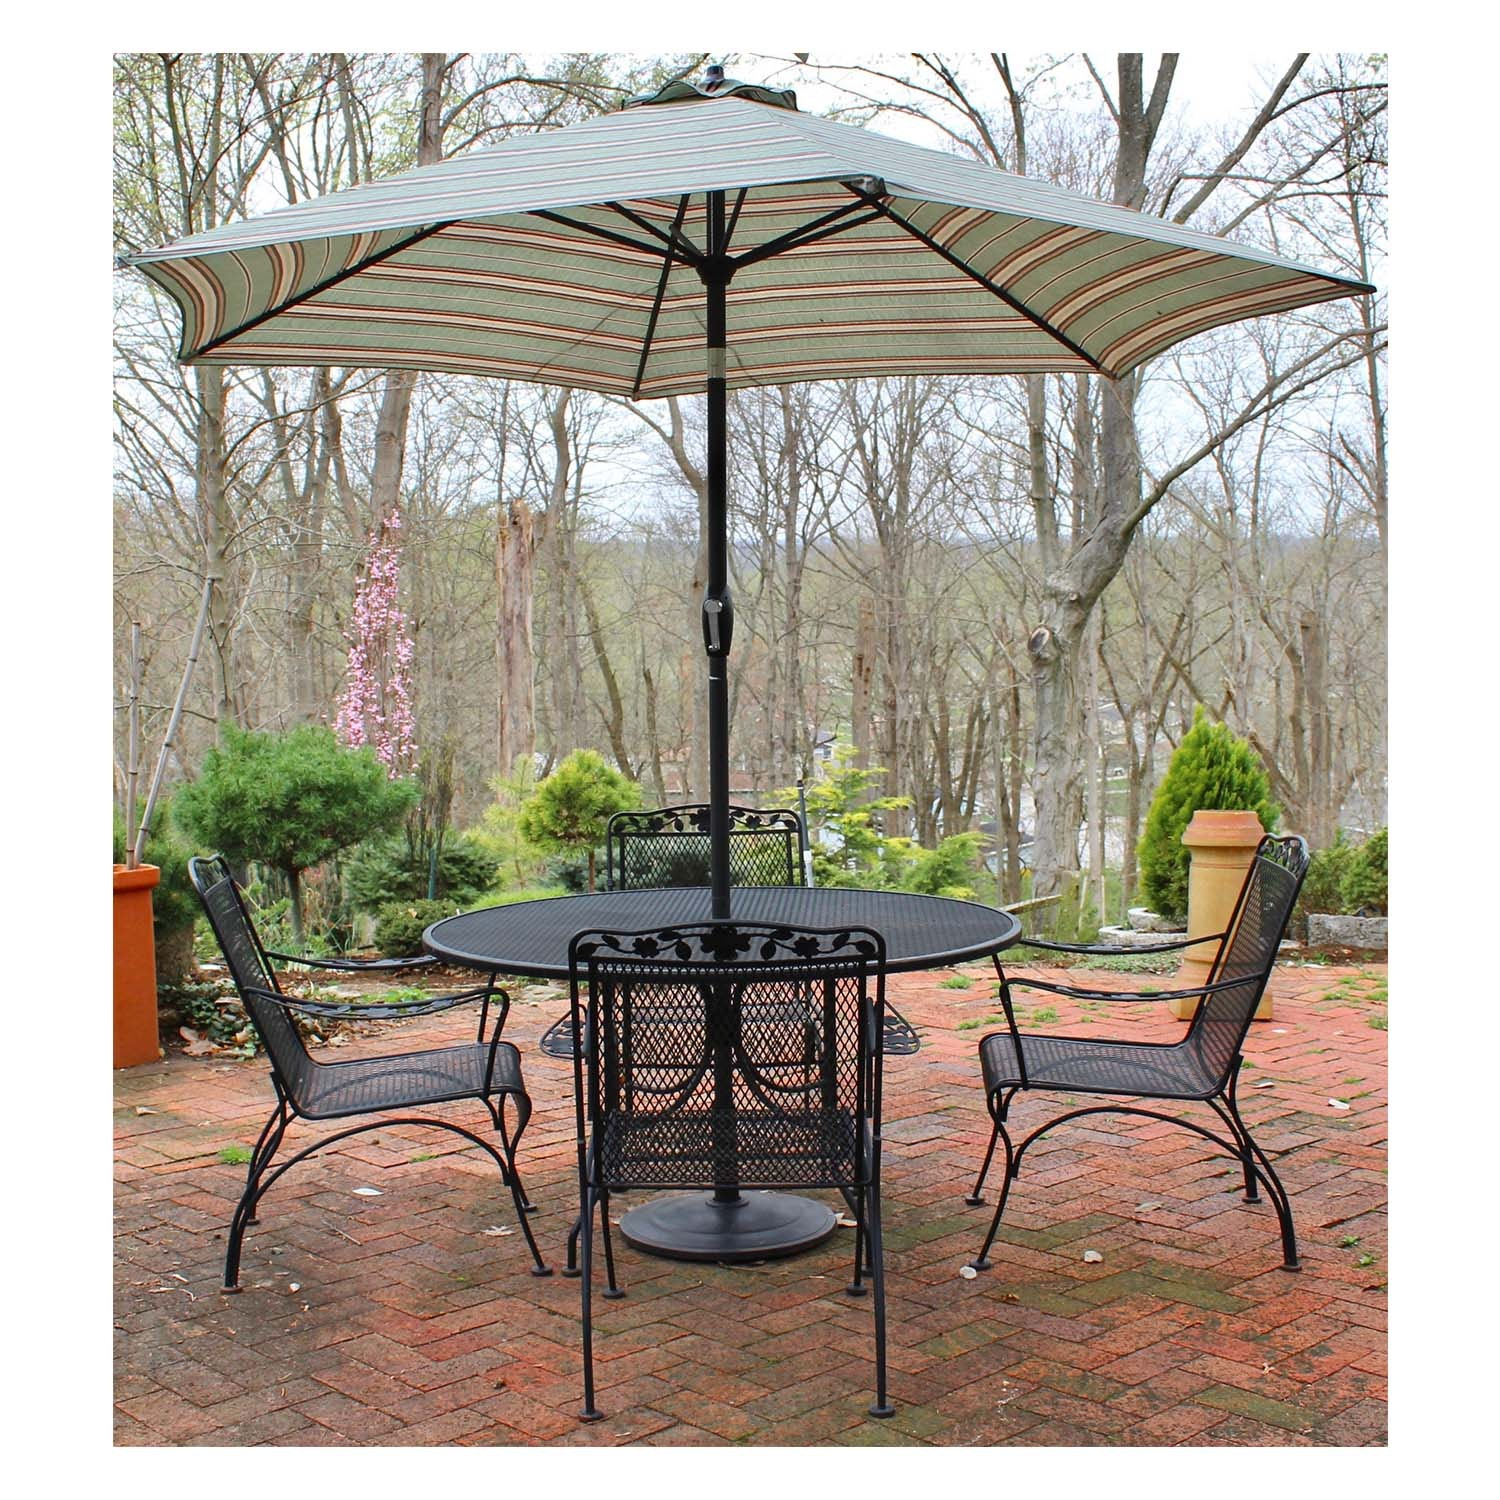 Iron Patio Dining Table, Chairs and Umbrella